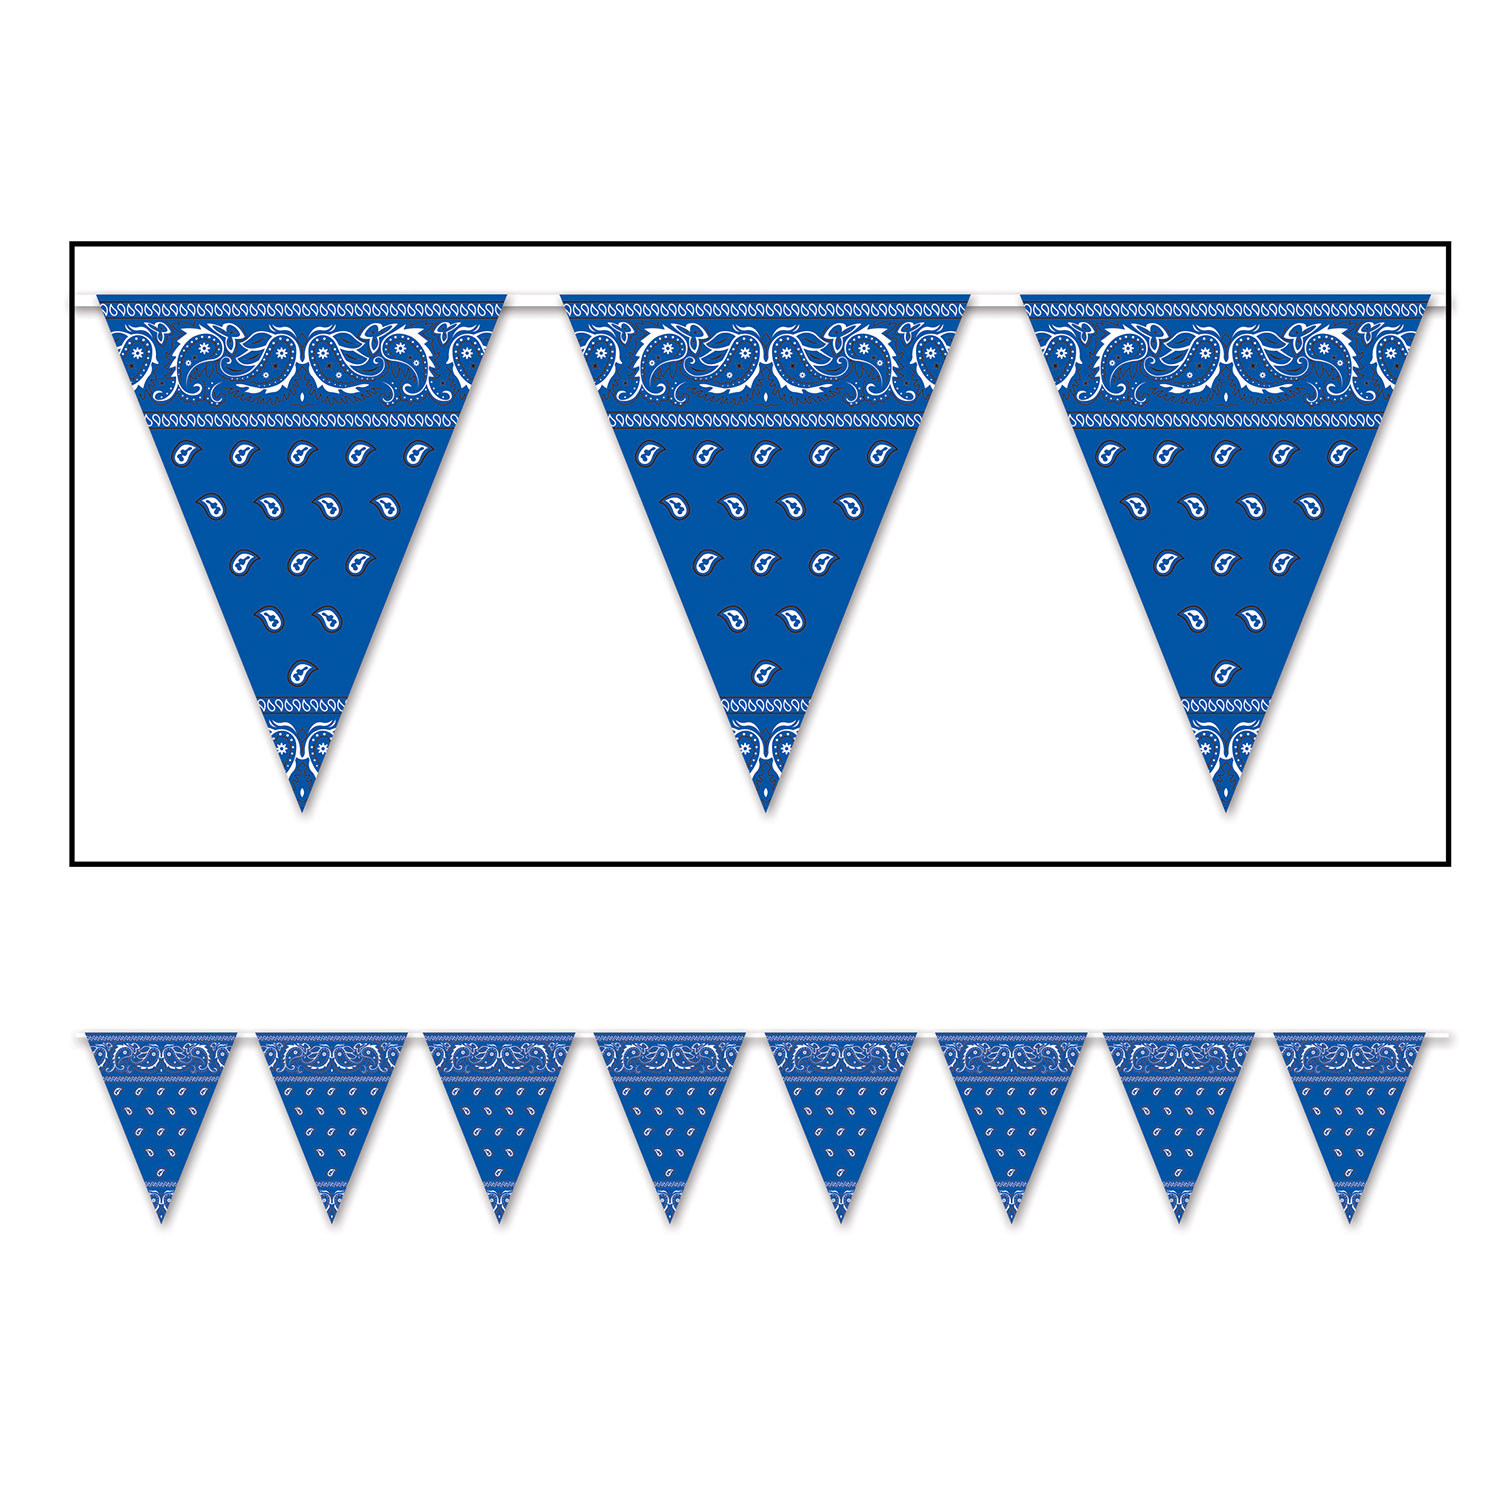 Bandana Pennant Banner (Pack of 12) Bandana Pennant Banner, western, new years eve, blue, deocration, wholesale, inexpensive, bulk